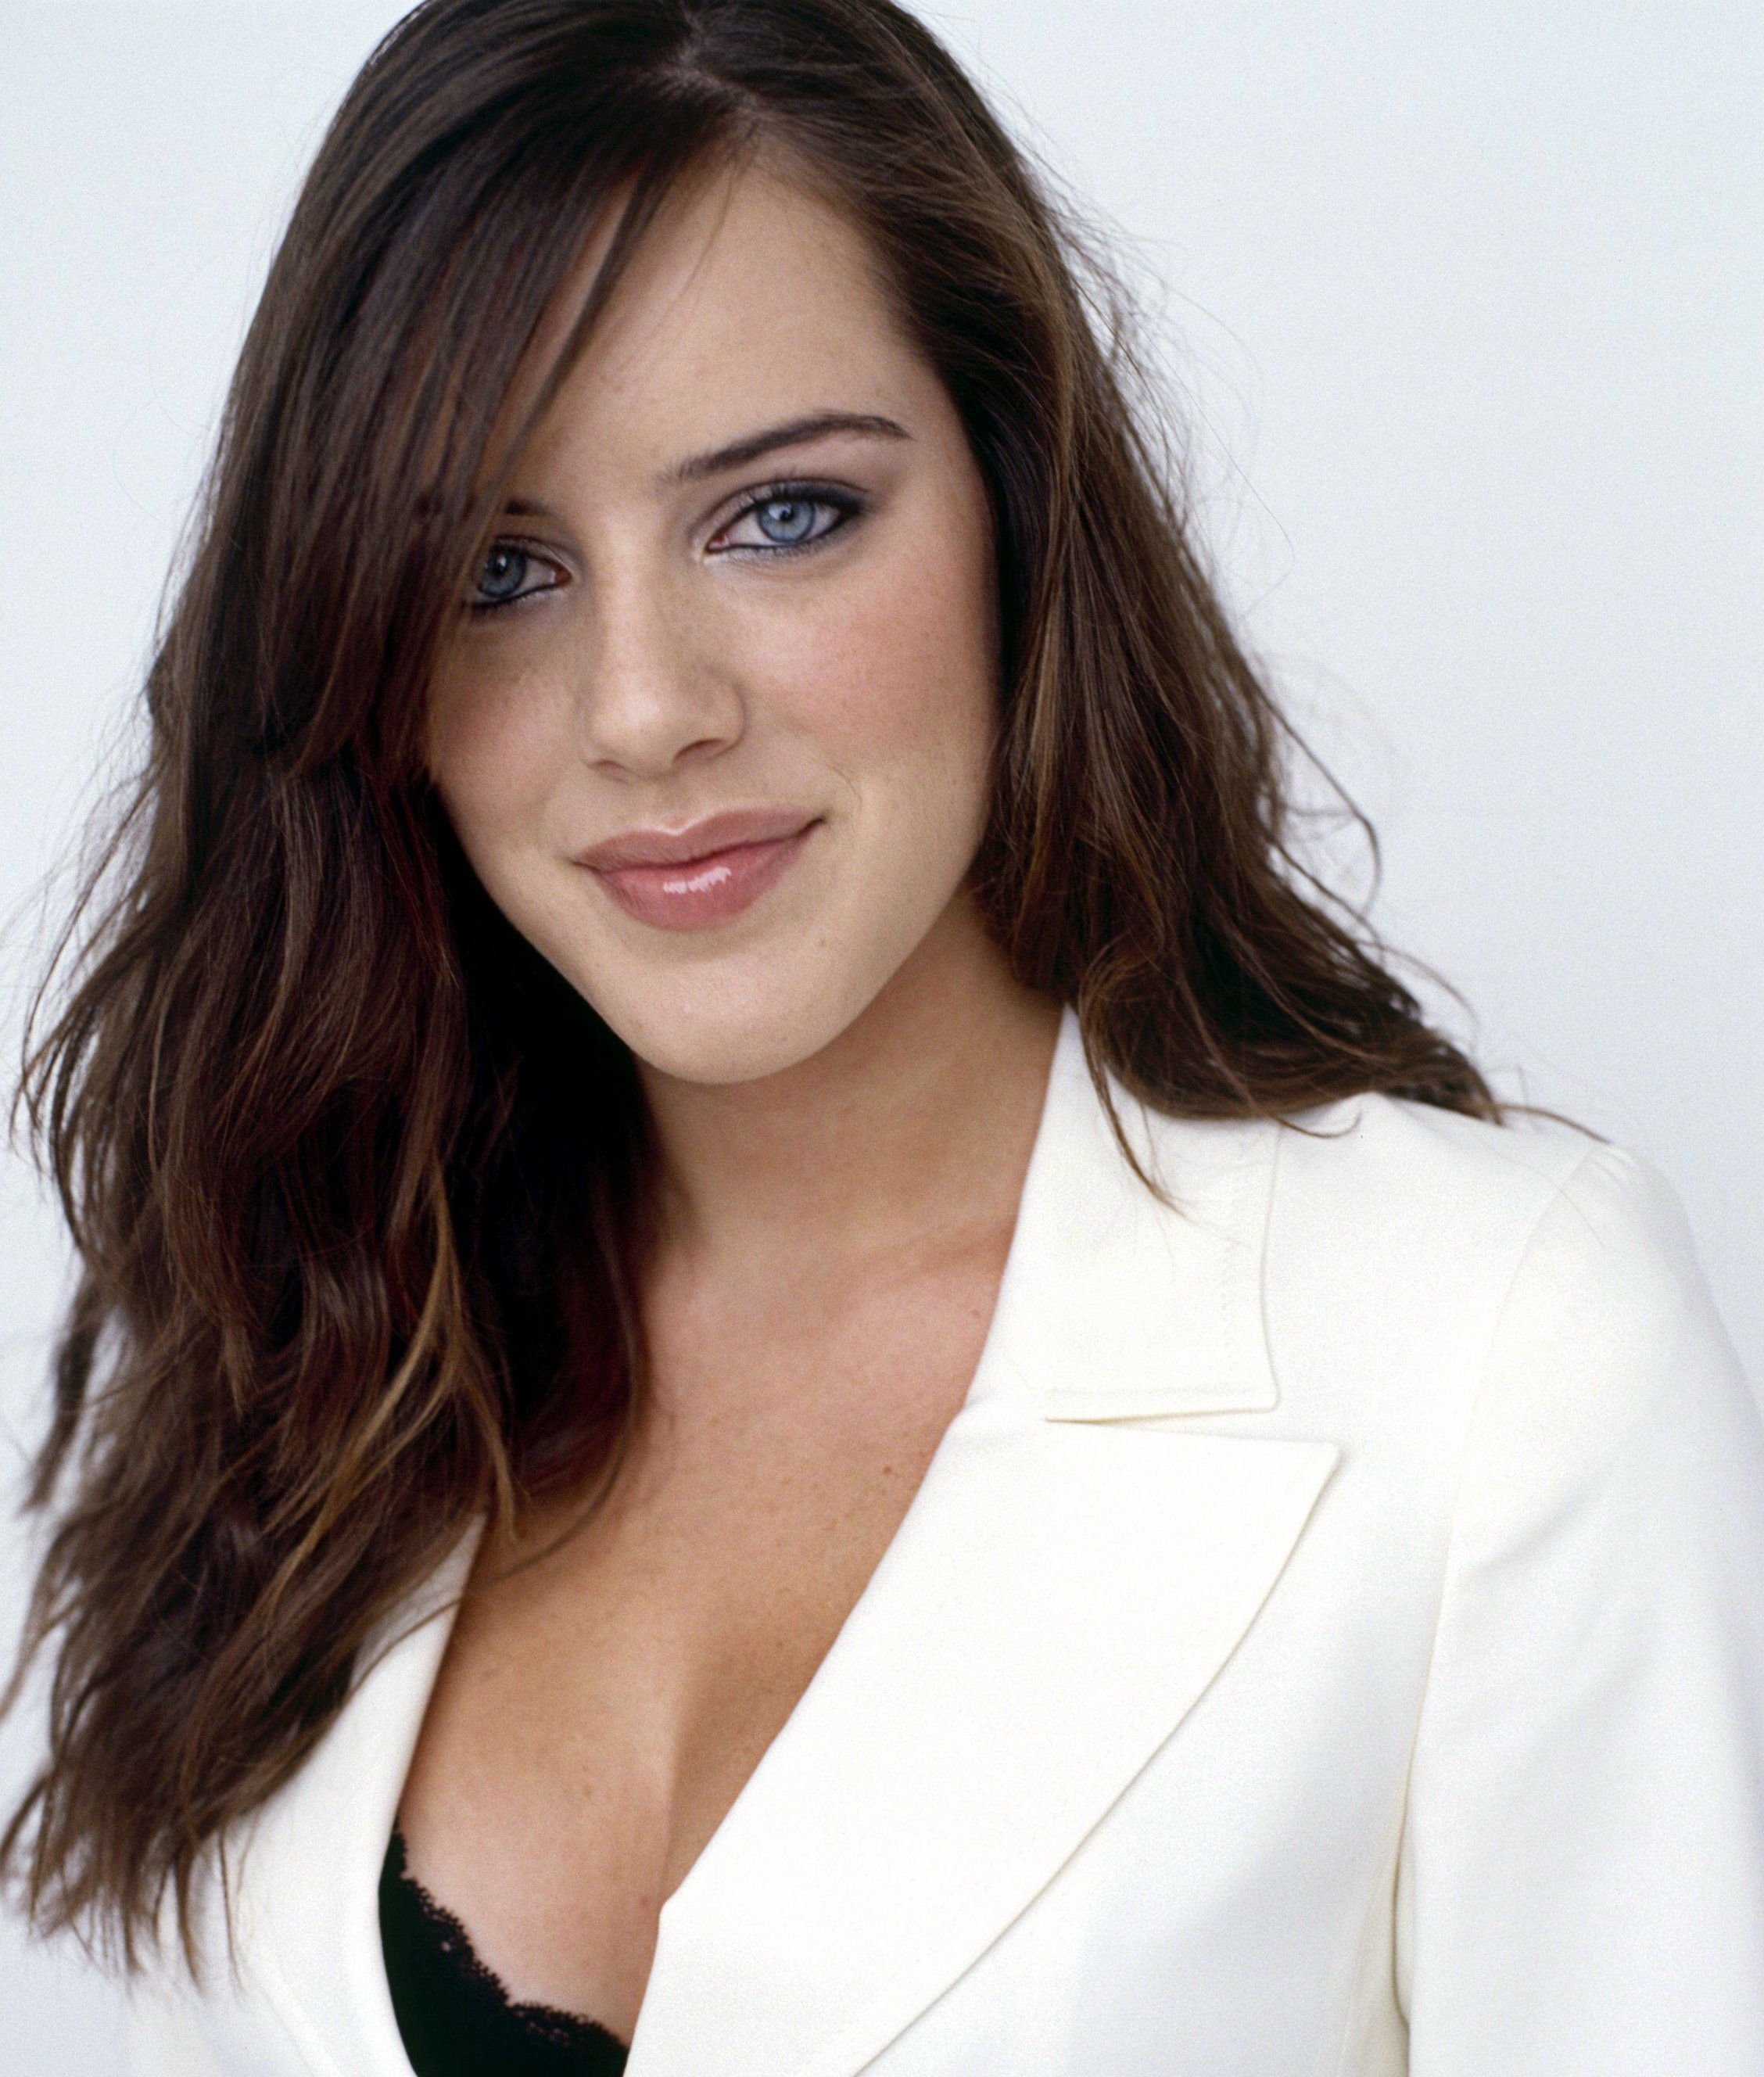 michelle ryan facebookmichelle ryan wiki, michelle ryan instagram, michelle ryan actress, michelle ryan cashback, michelle ryan doctor who, michelle ryan, michelle ryan twitter, michelle ryan imdb, michelle ryan facebook, michelle ryan 2015, michelle ryan boyfriend, michelle ryan bionic woman, michelle ryan merlin, michelle ryan 2014, michelle ryan wikifeet